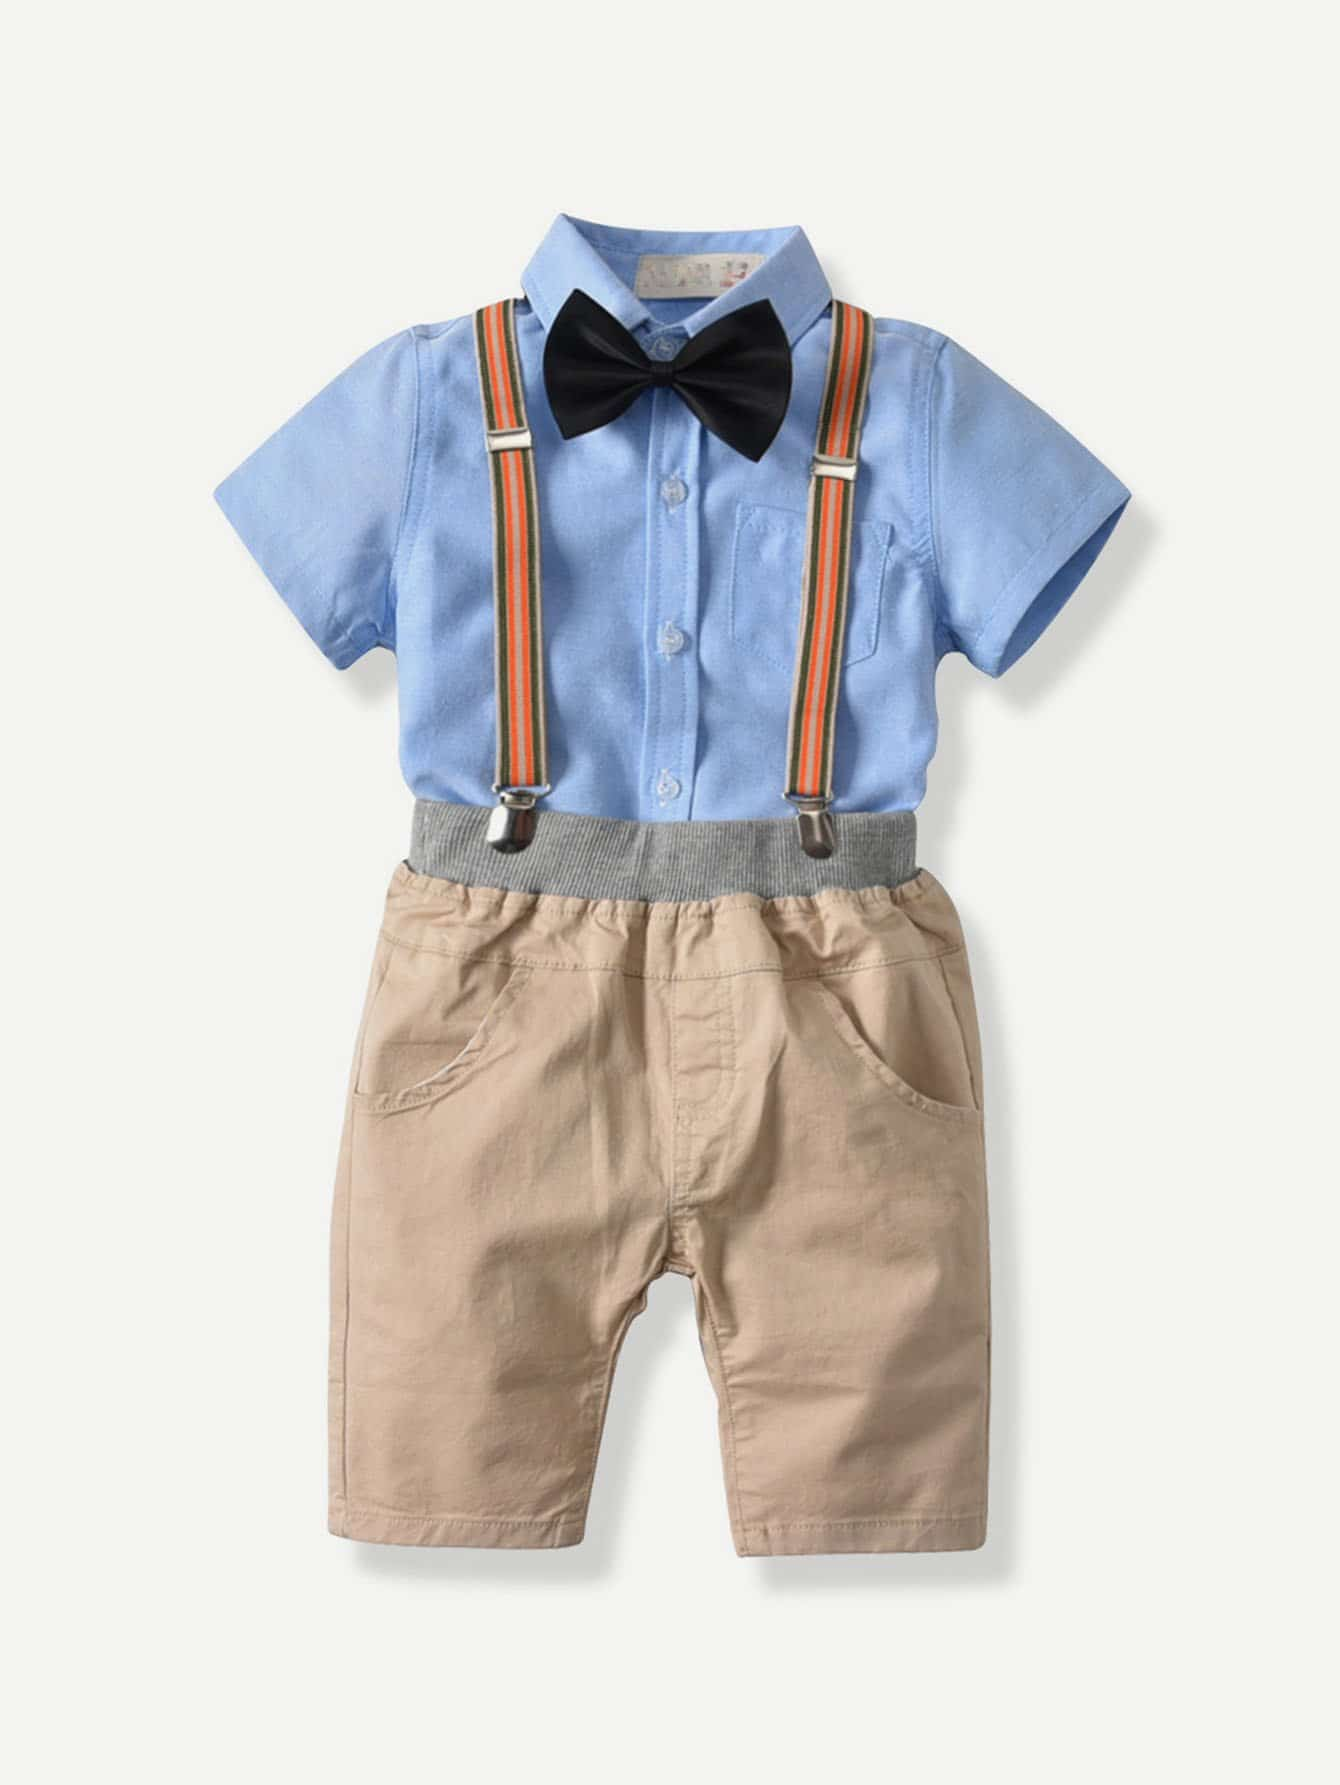 Boys Tie Detail Blouse With Overall Shorts